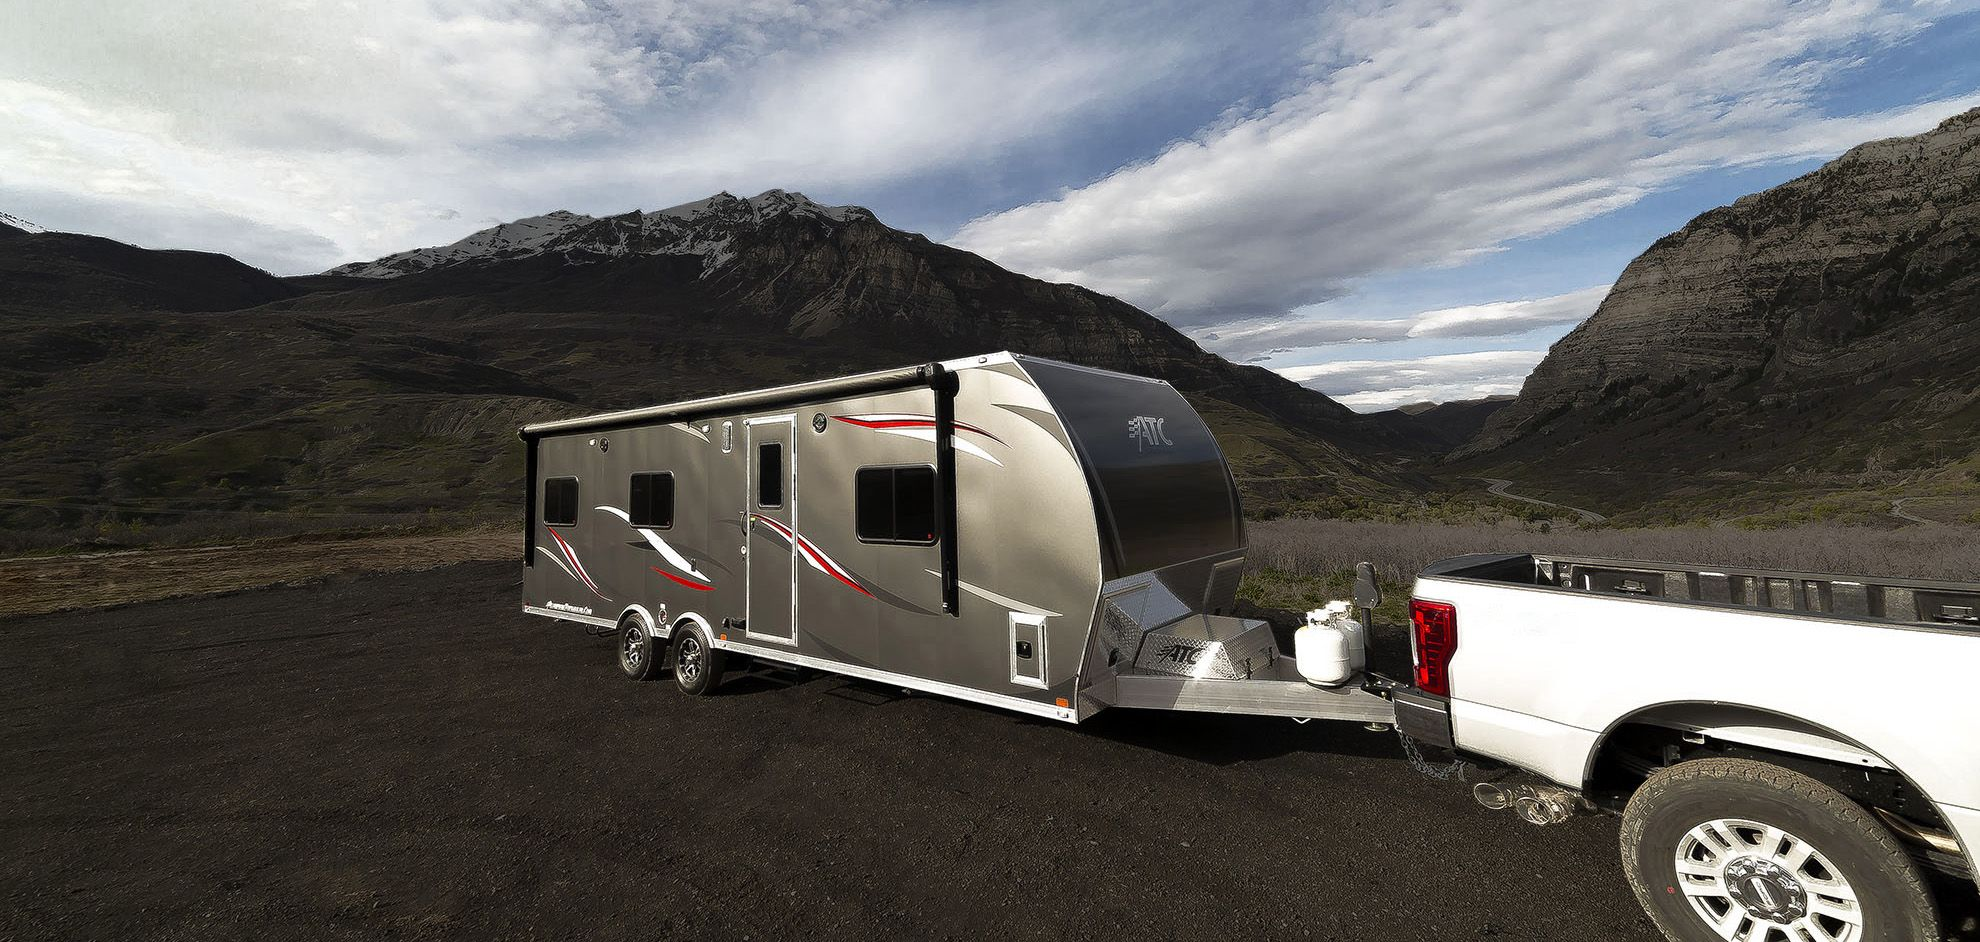 Atc Toy Hauler Options Toy Hauler Fifth Wheel Campers Camper